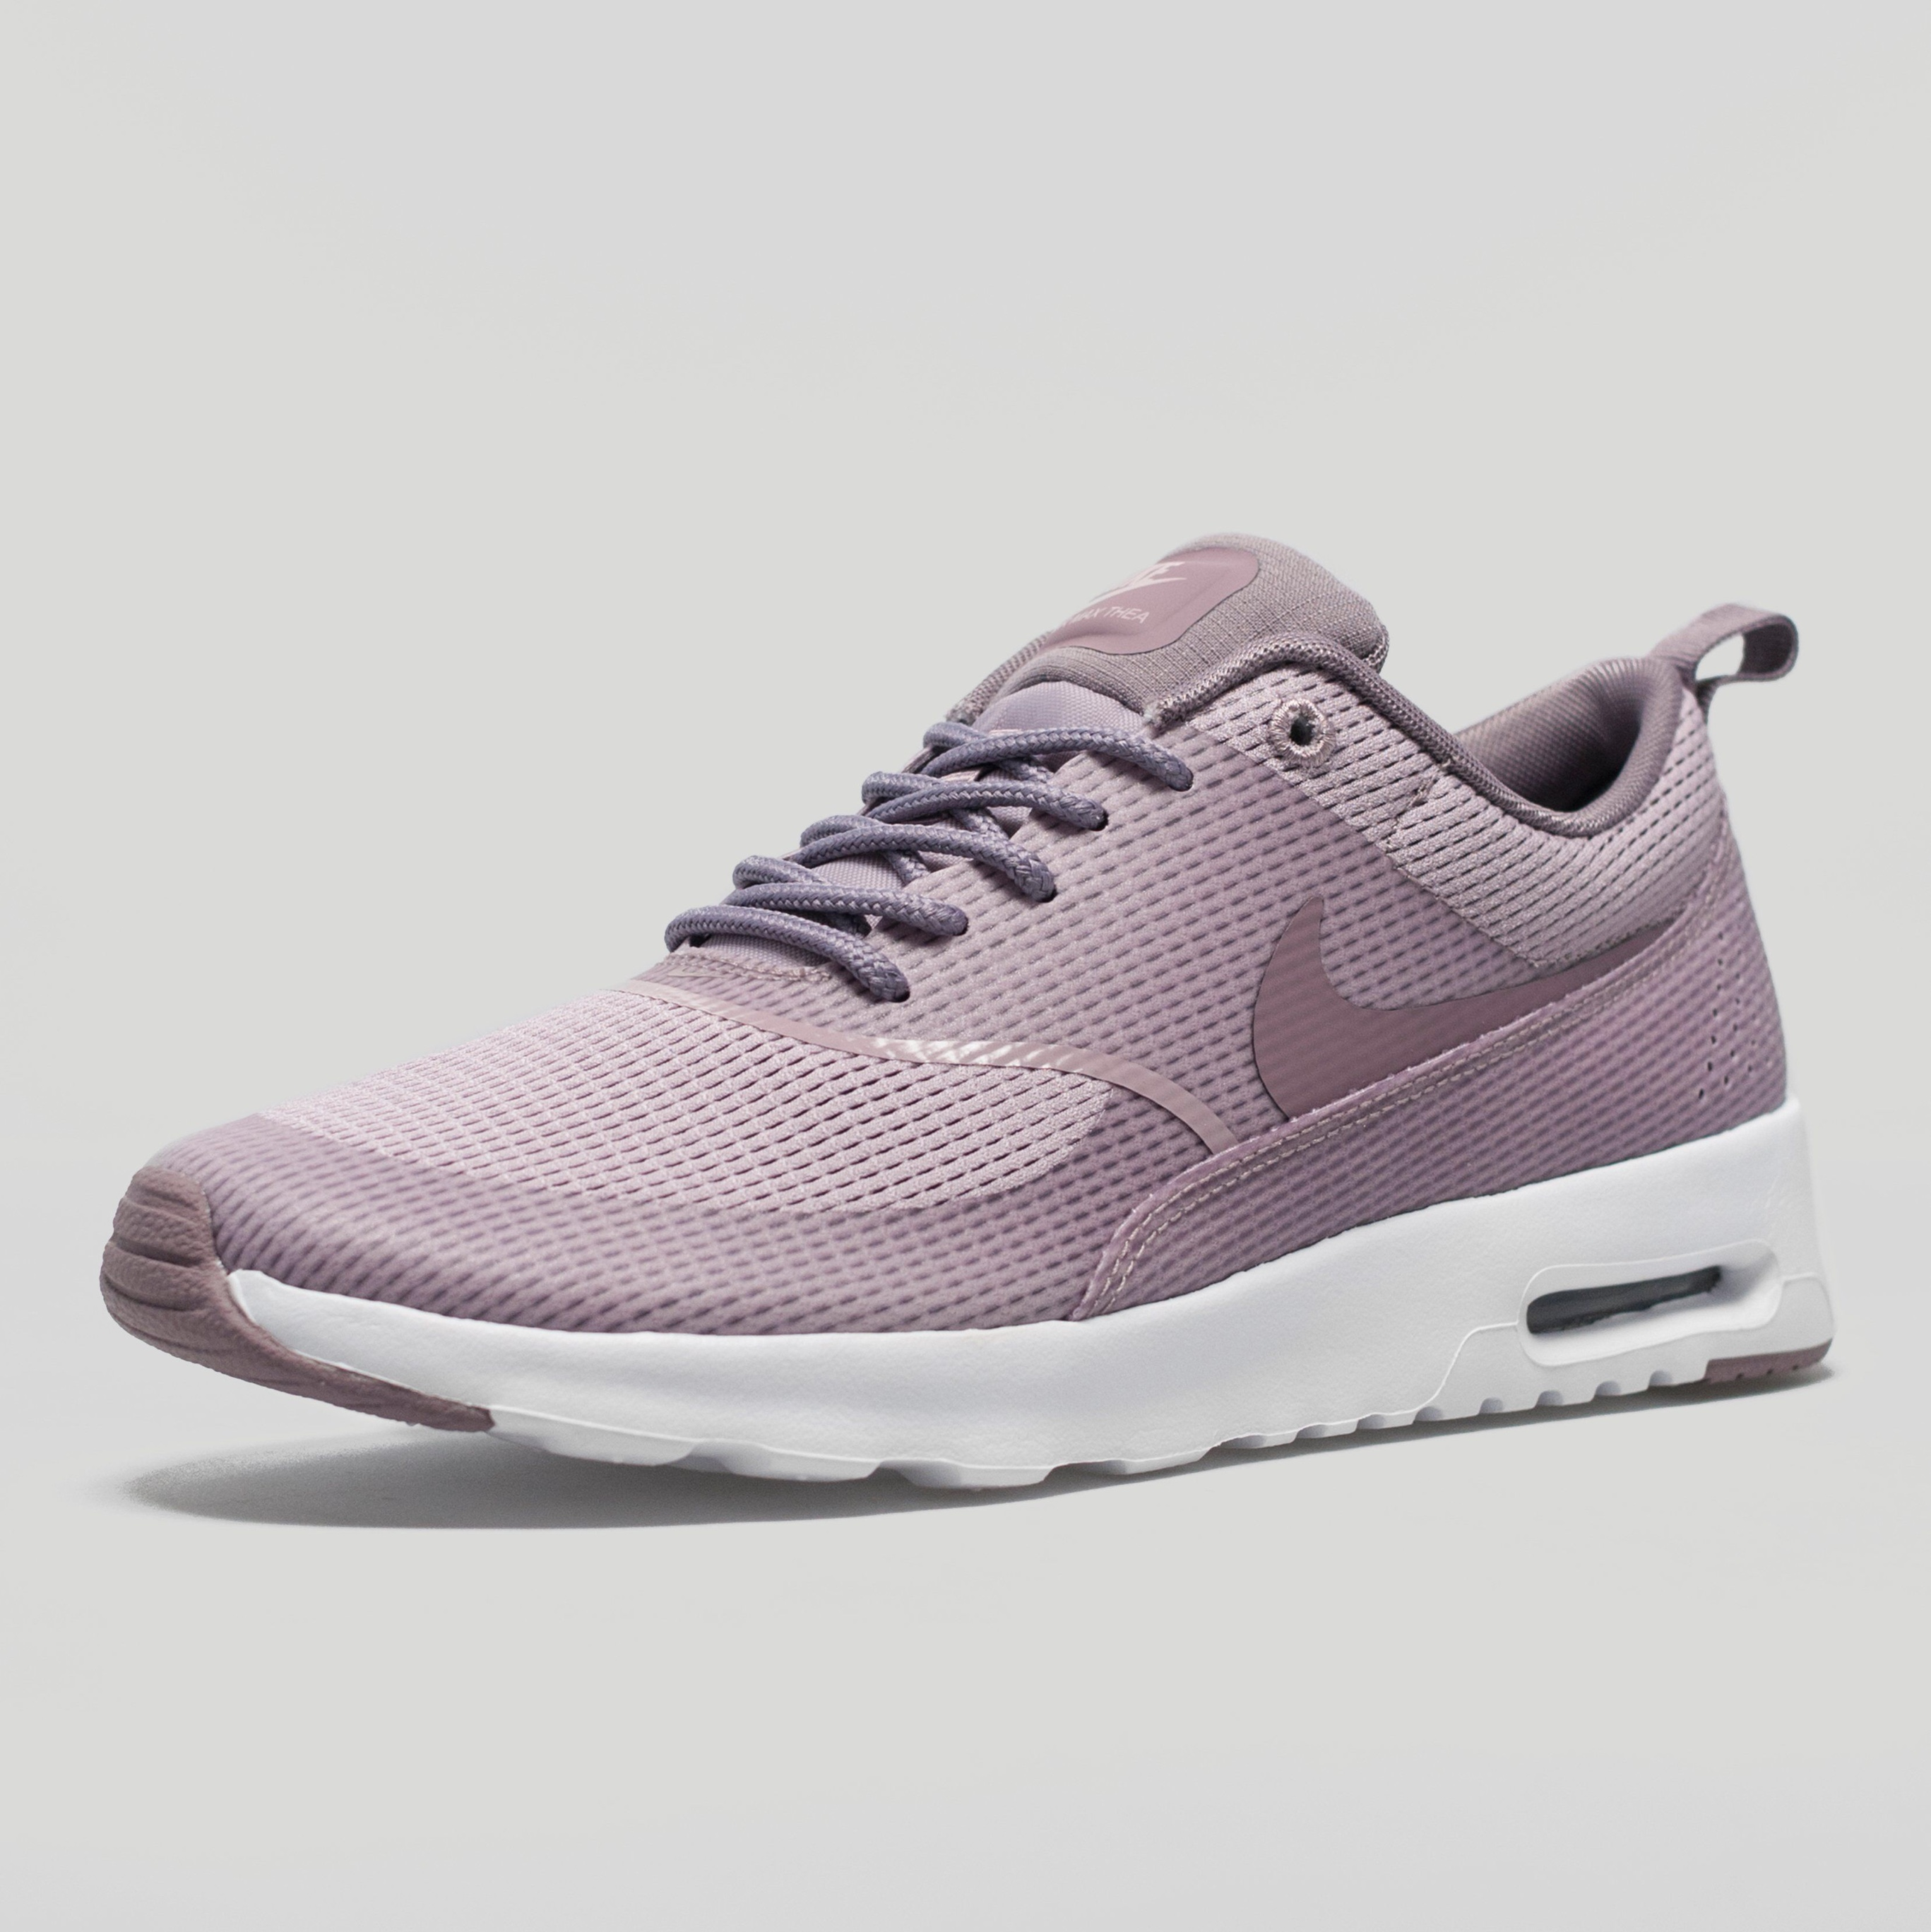 Nike Air Max Thea Texture lilac size 6. Sold out Depop